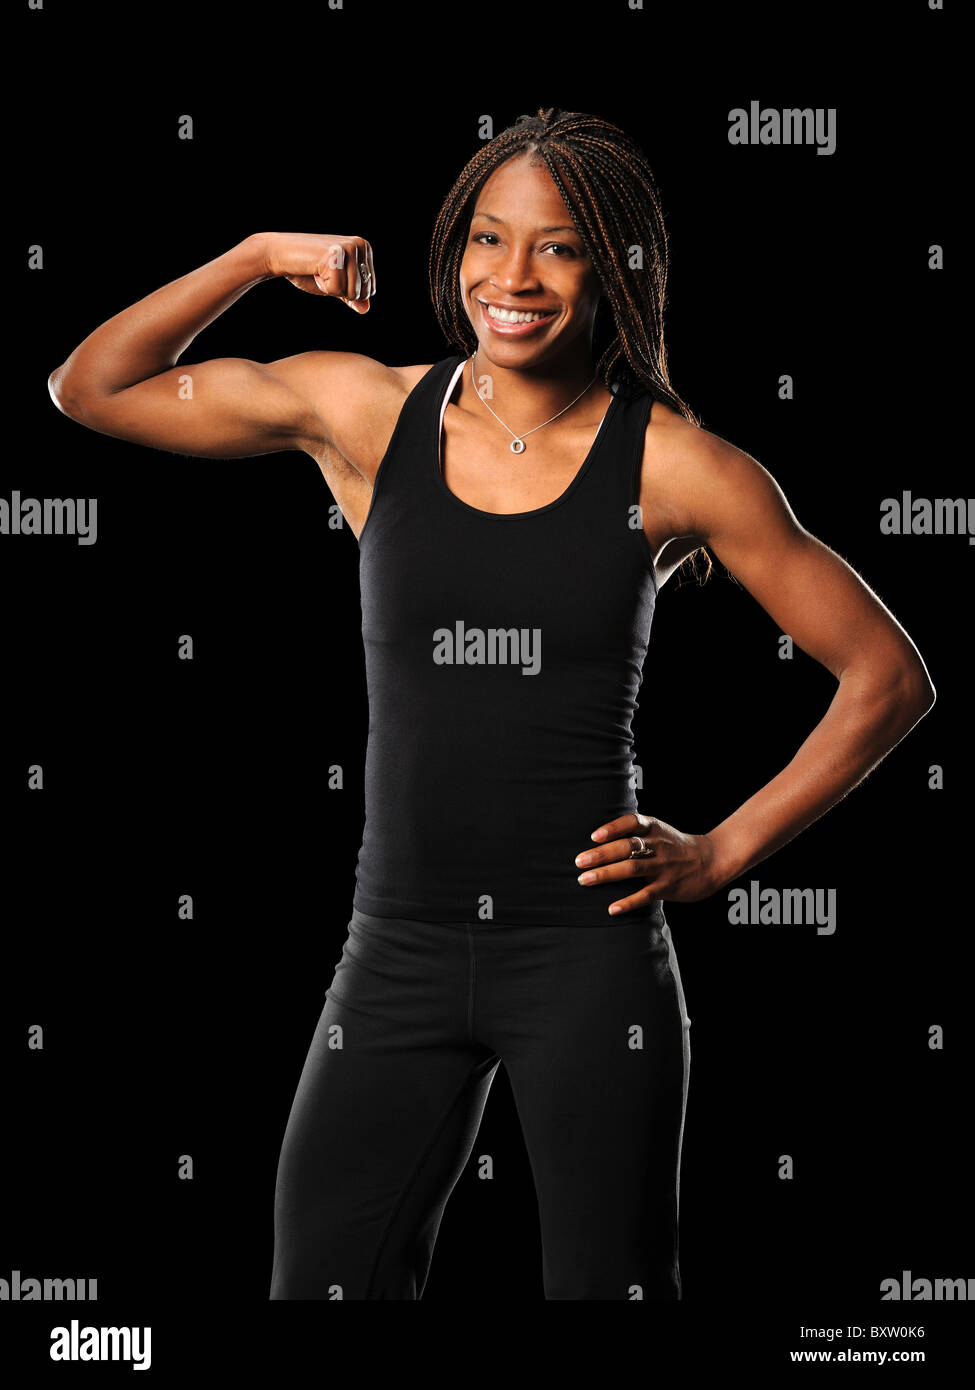 Young African American woman flexing biceps isolated over black background - Stock Image